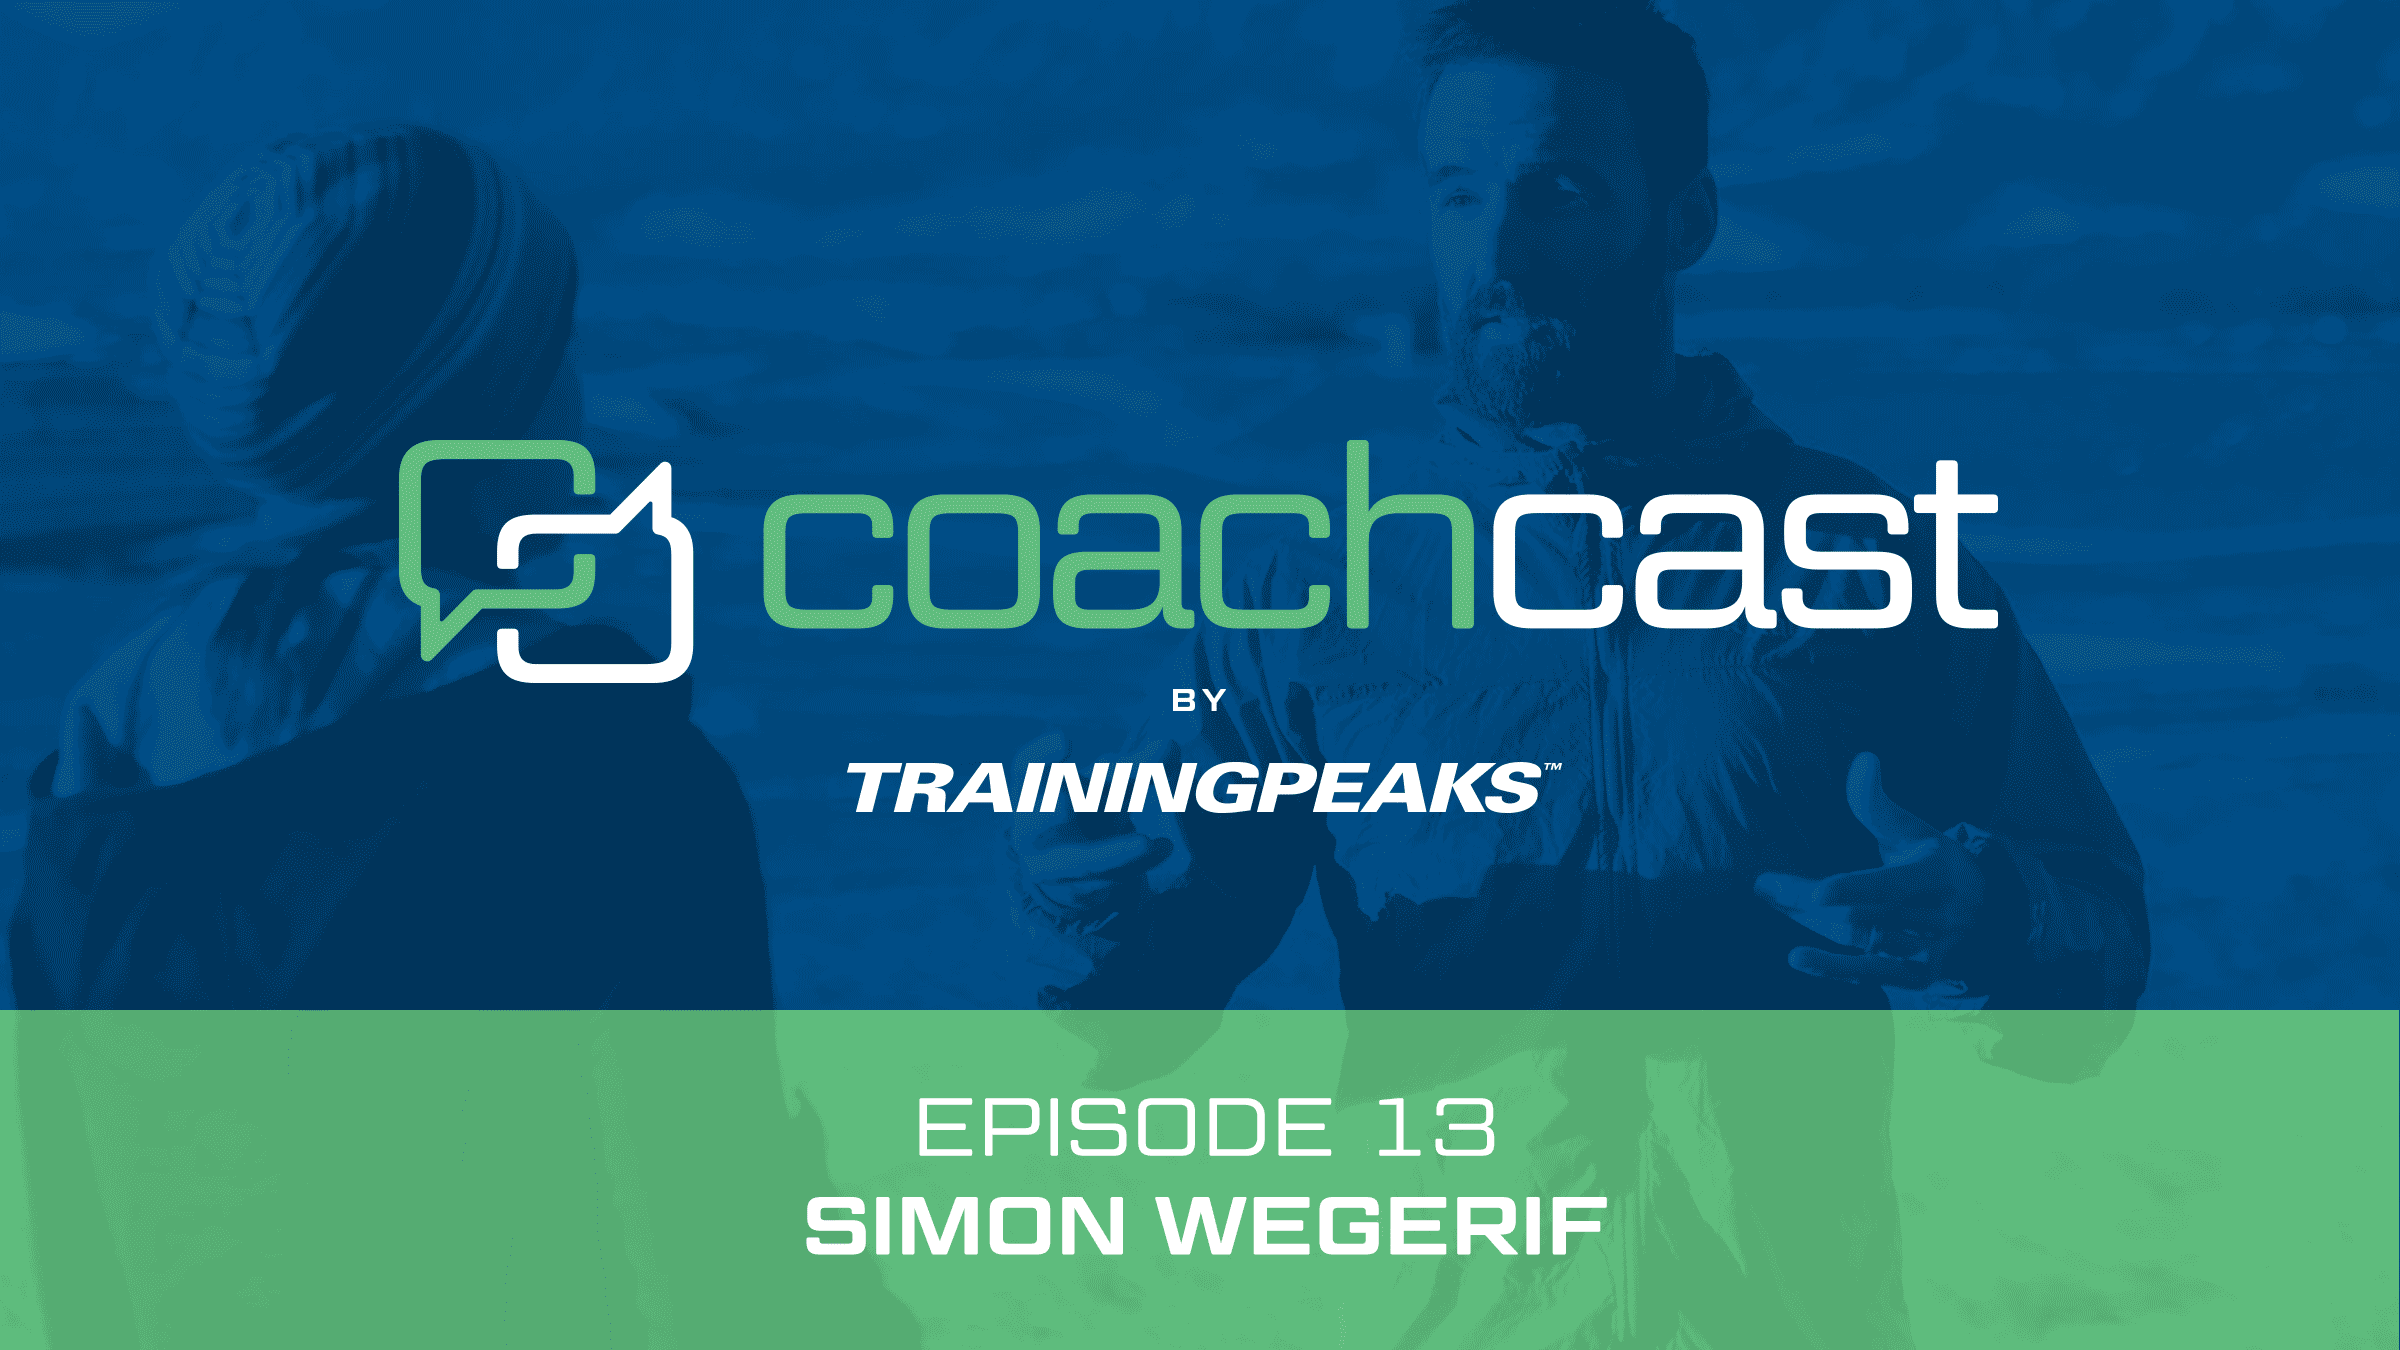 CoachCast: Heart Rate Variability with Simon Wegerif